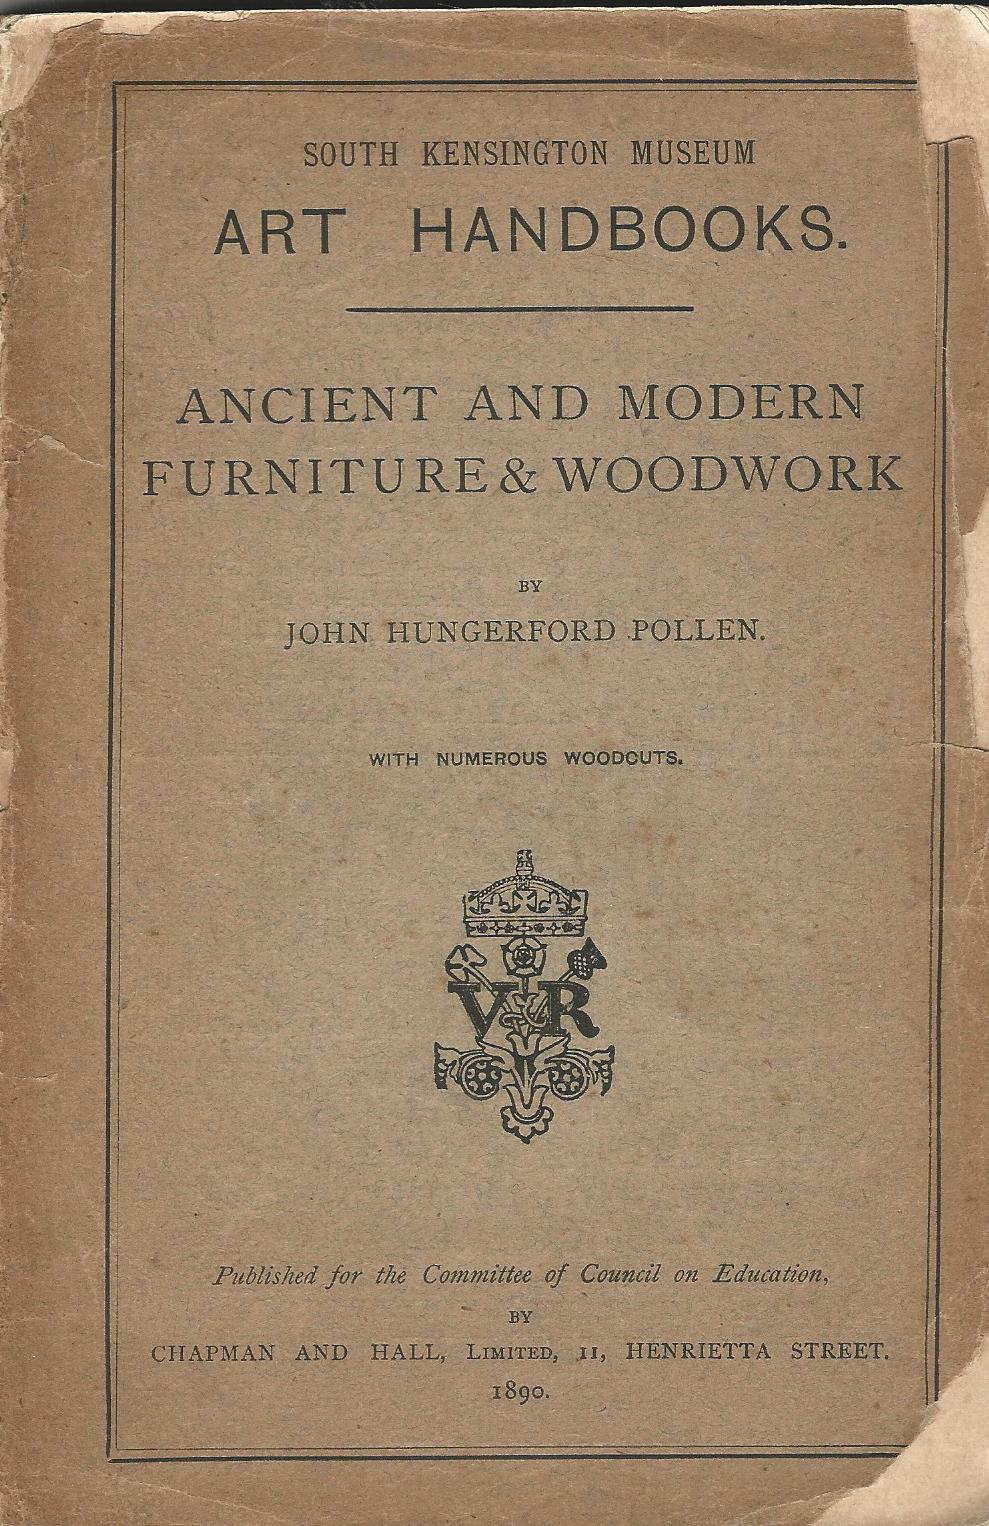 Image for South Kensington Museum Art Handbooks: Ancient and Modern Furniture and Woodwork.